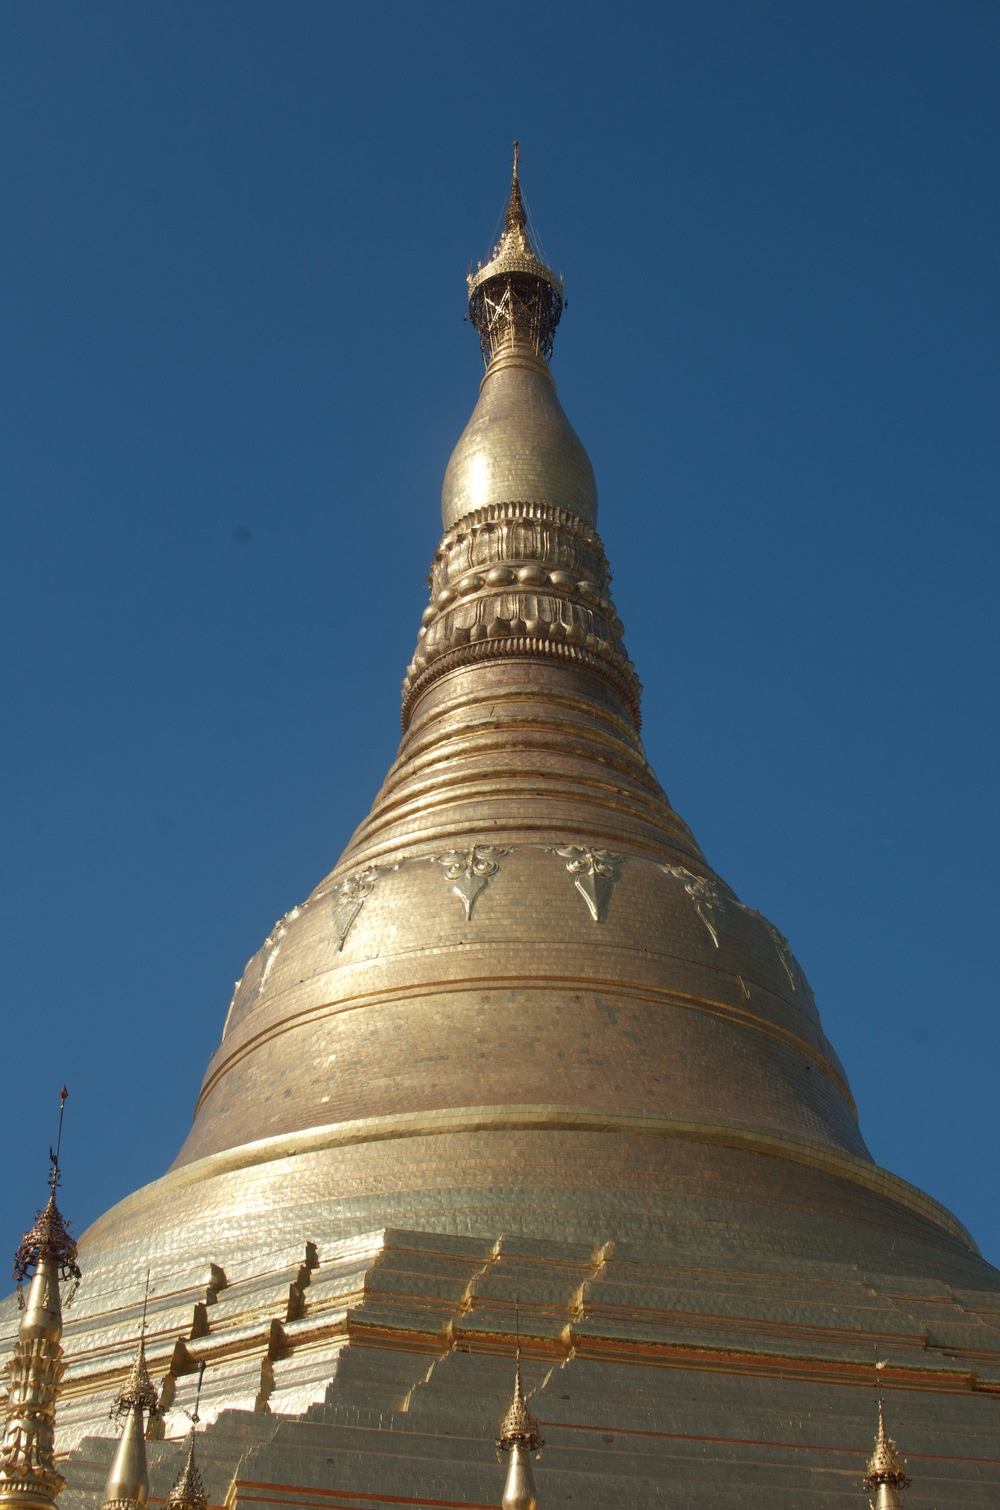 There it is in all its golden glory. The biggest stupa in Burma, and perhaps the world, at 99m tall.